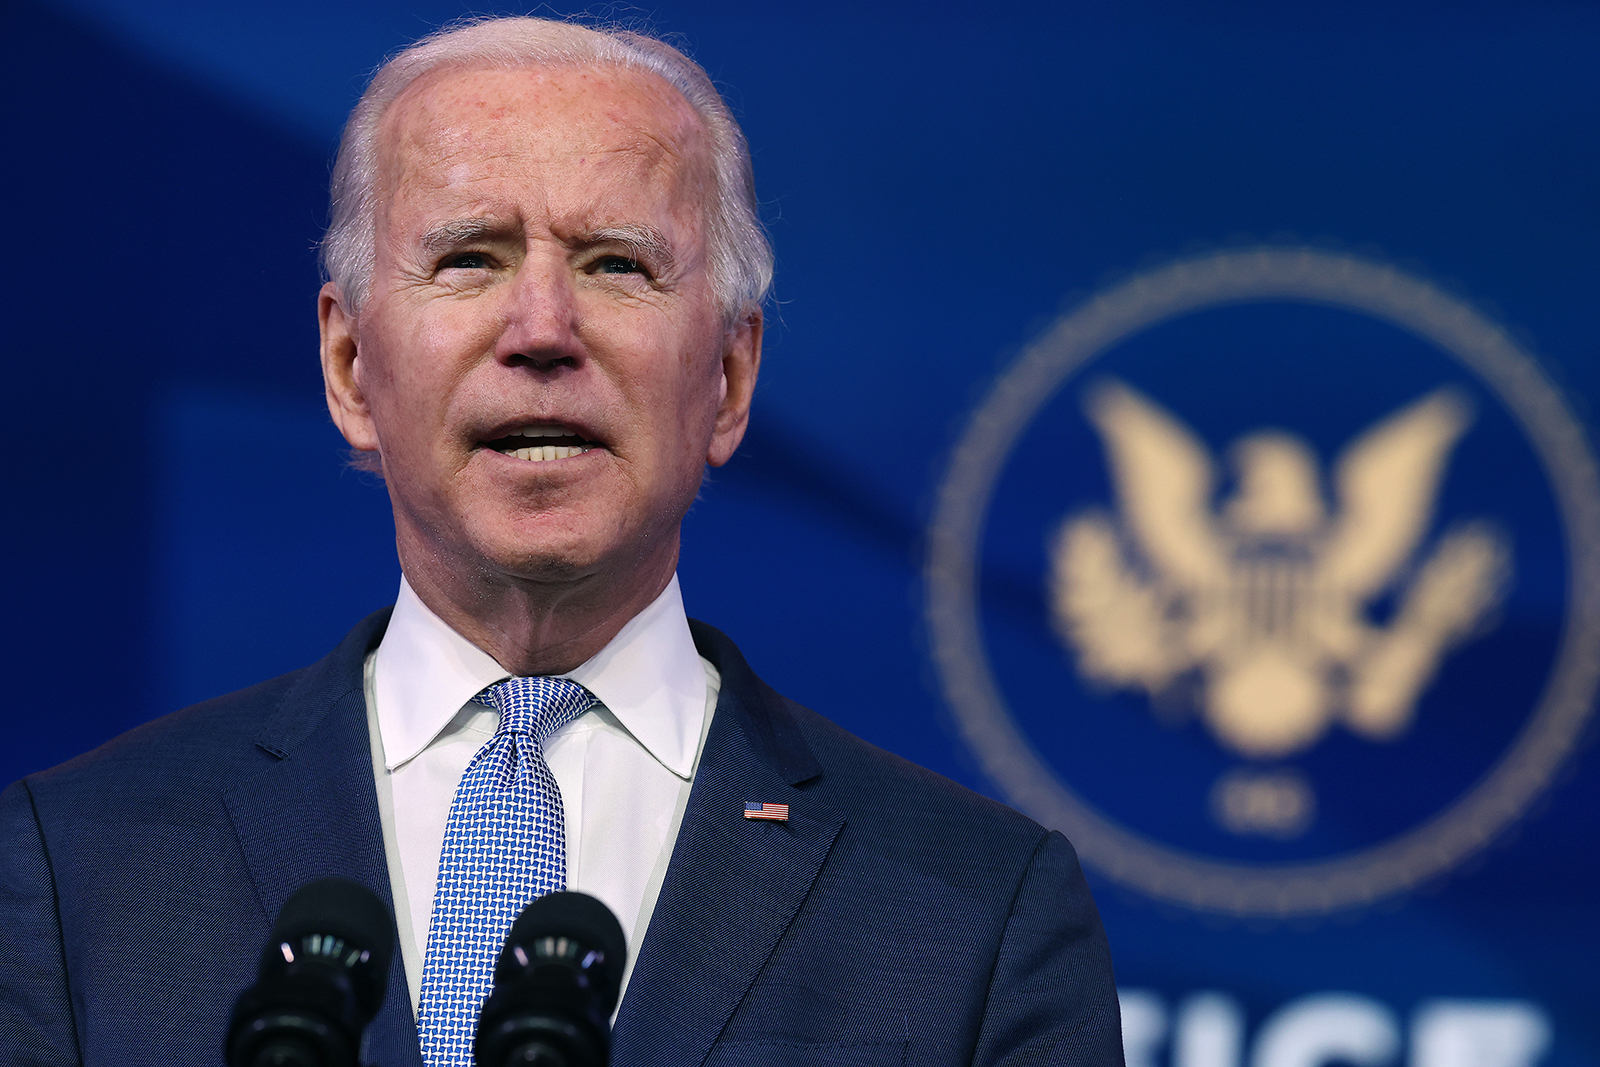 US President-elect Joe Biden delivers remarks about the storming of the US Capitol by a pro-Trump mob at The Queen theater in Wilmington, Delaware, on January 6.